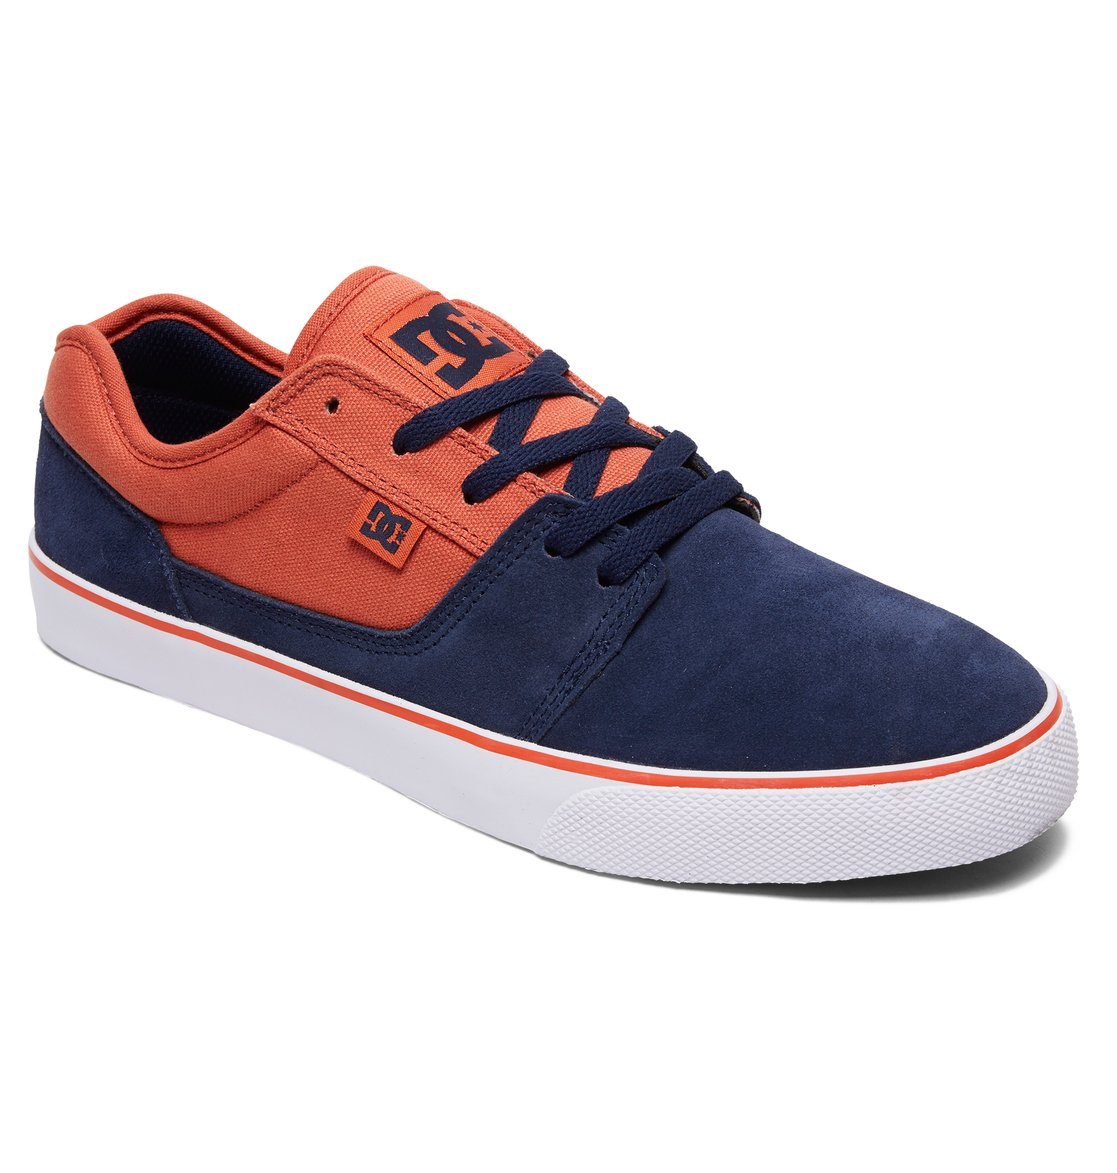 DC-Shoes-Tonik-Baskets-pour-Homme-302905 miniature 38